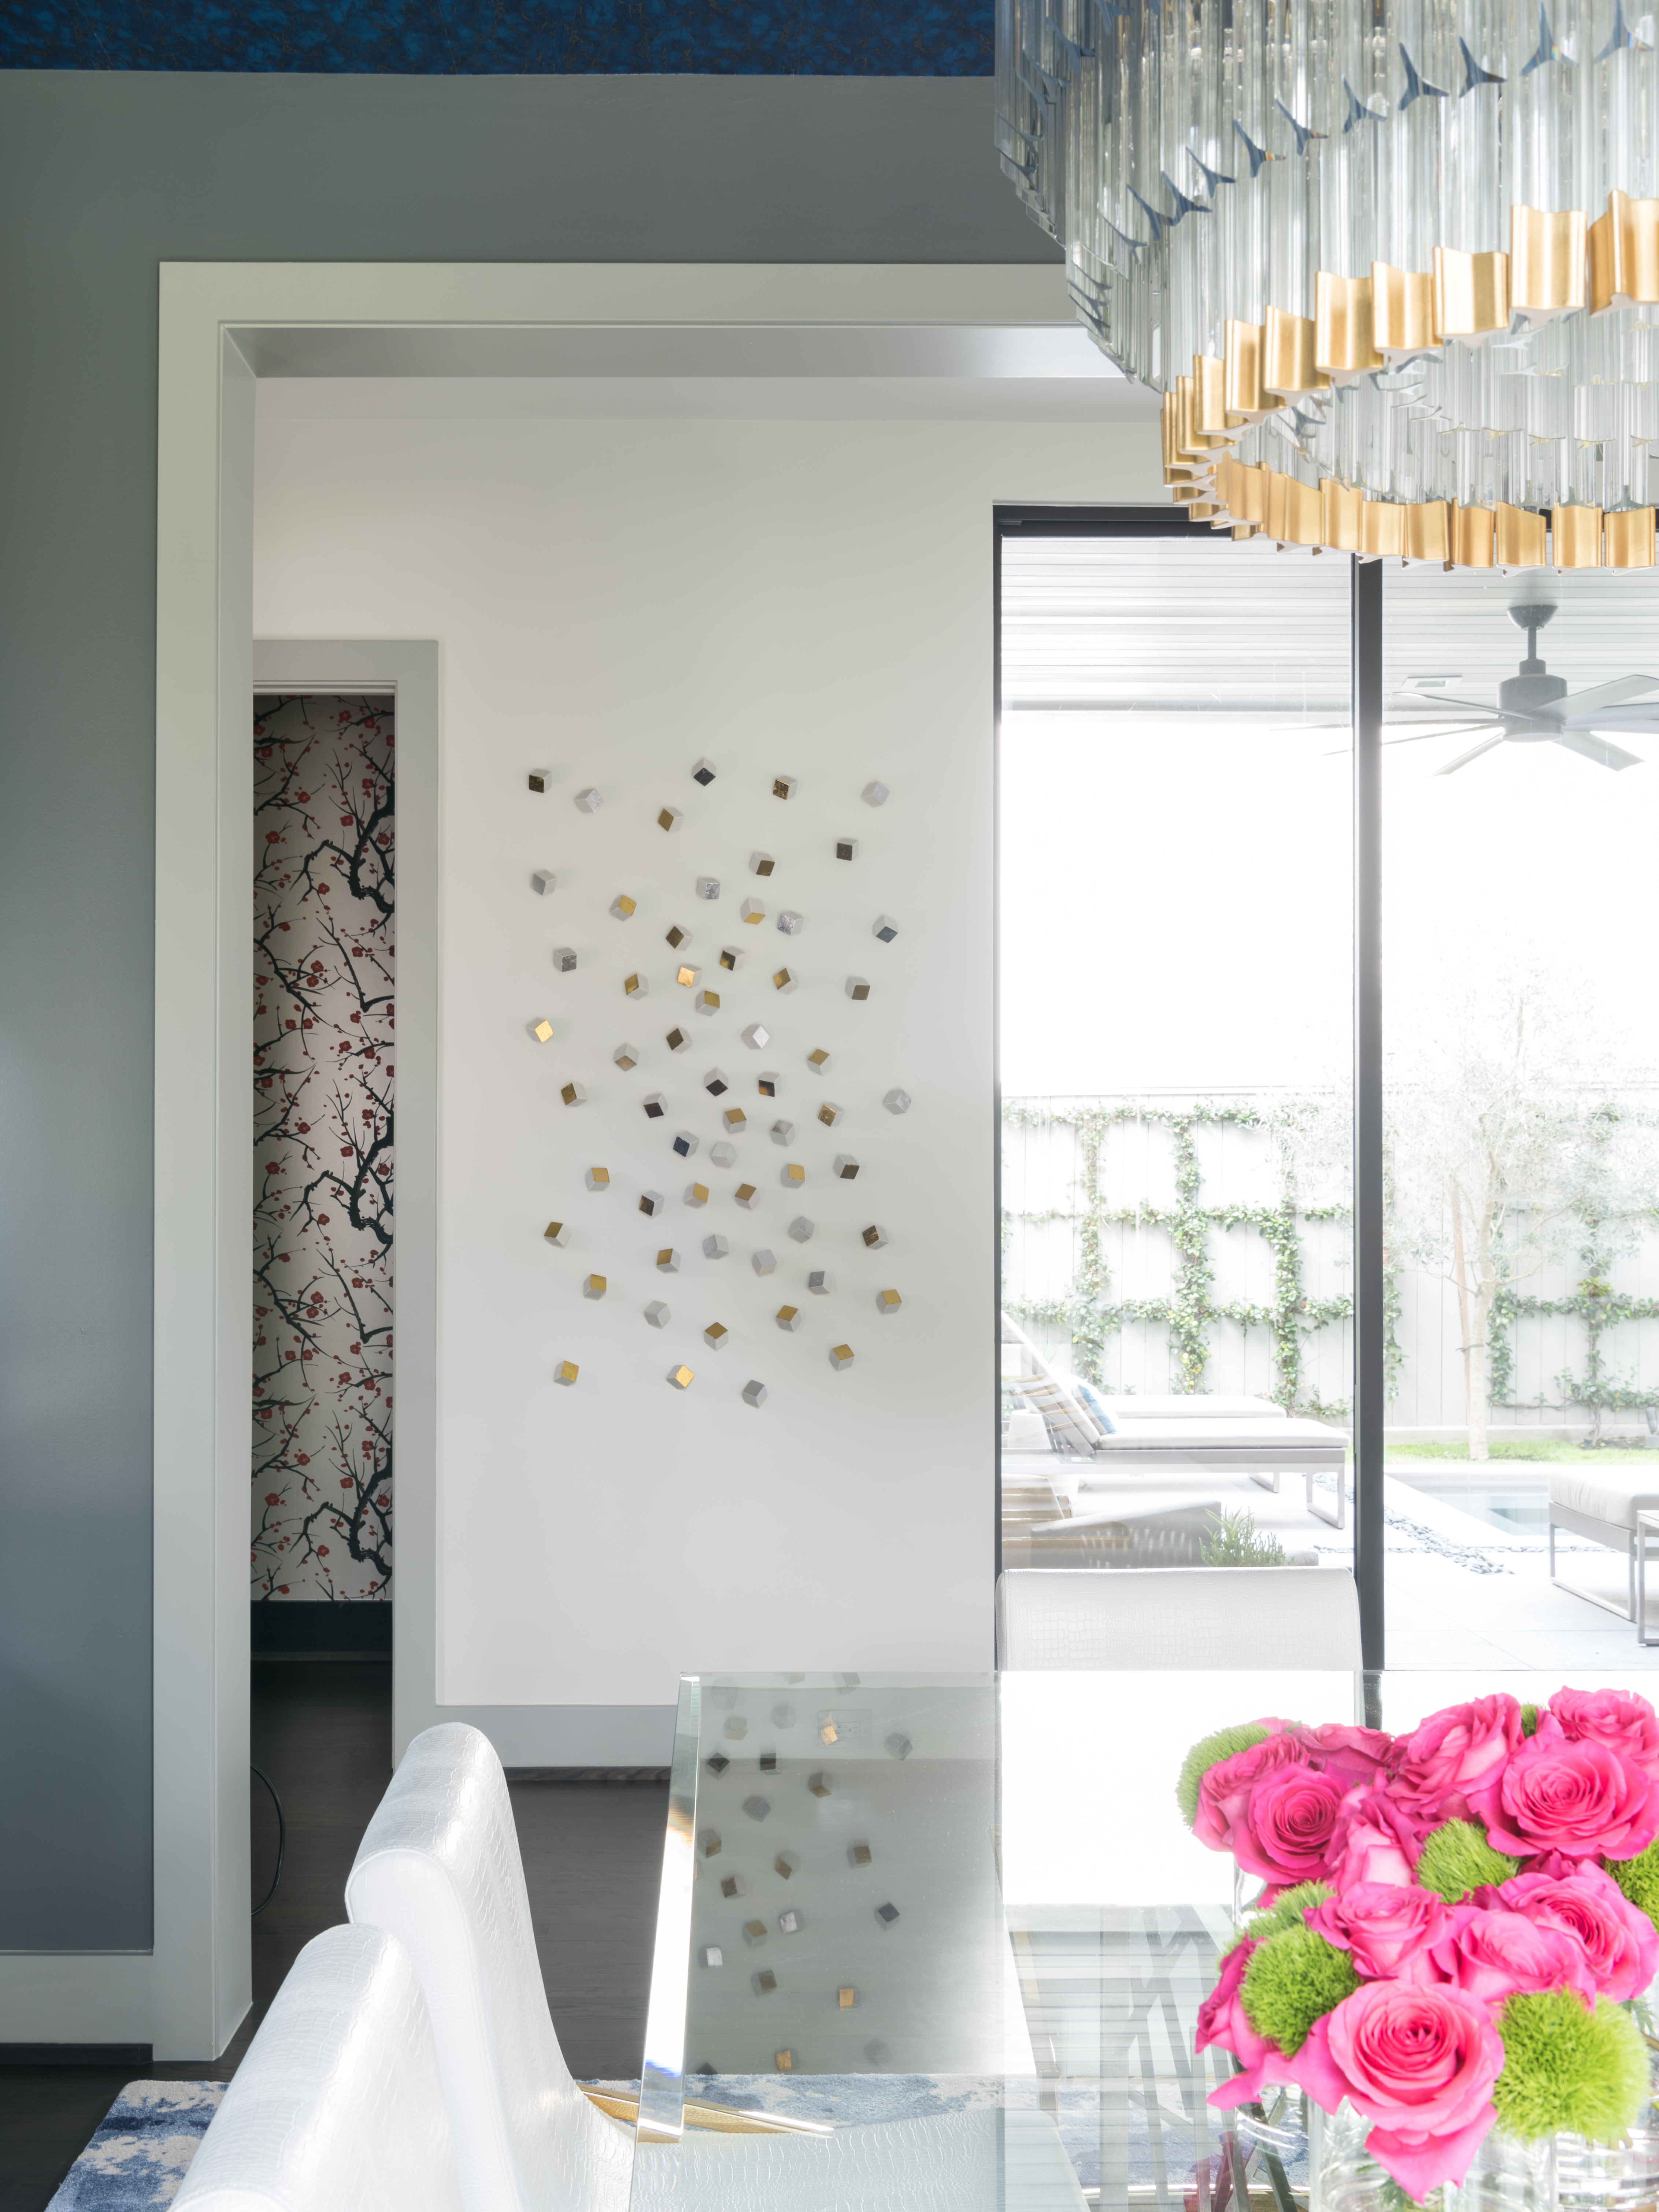 Metallic accents art objects by Gold Leaf Design Group - Laura U Interior Design